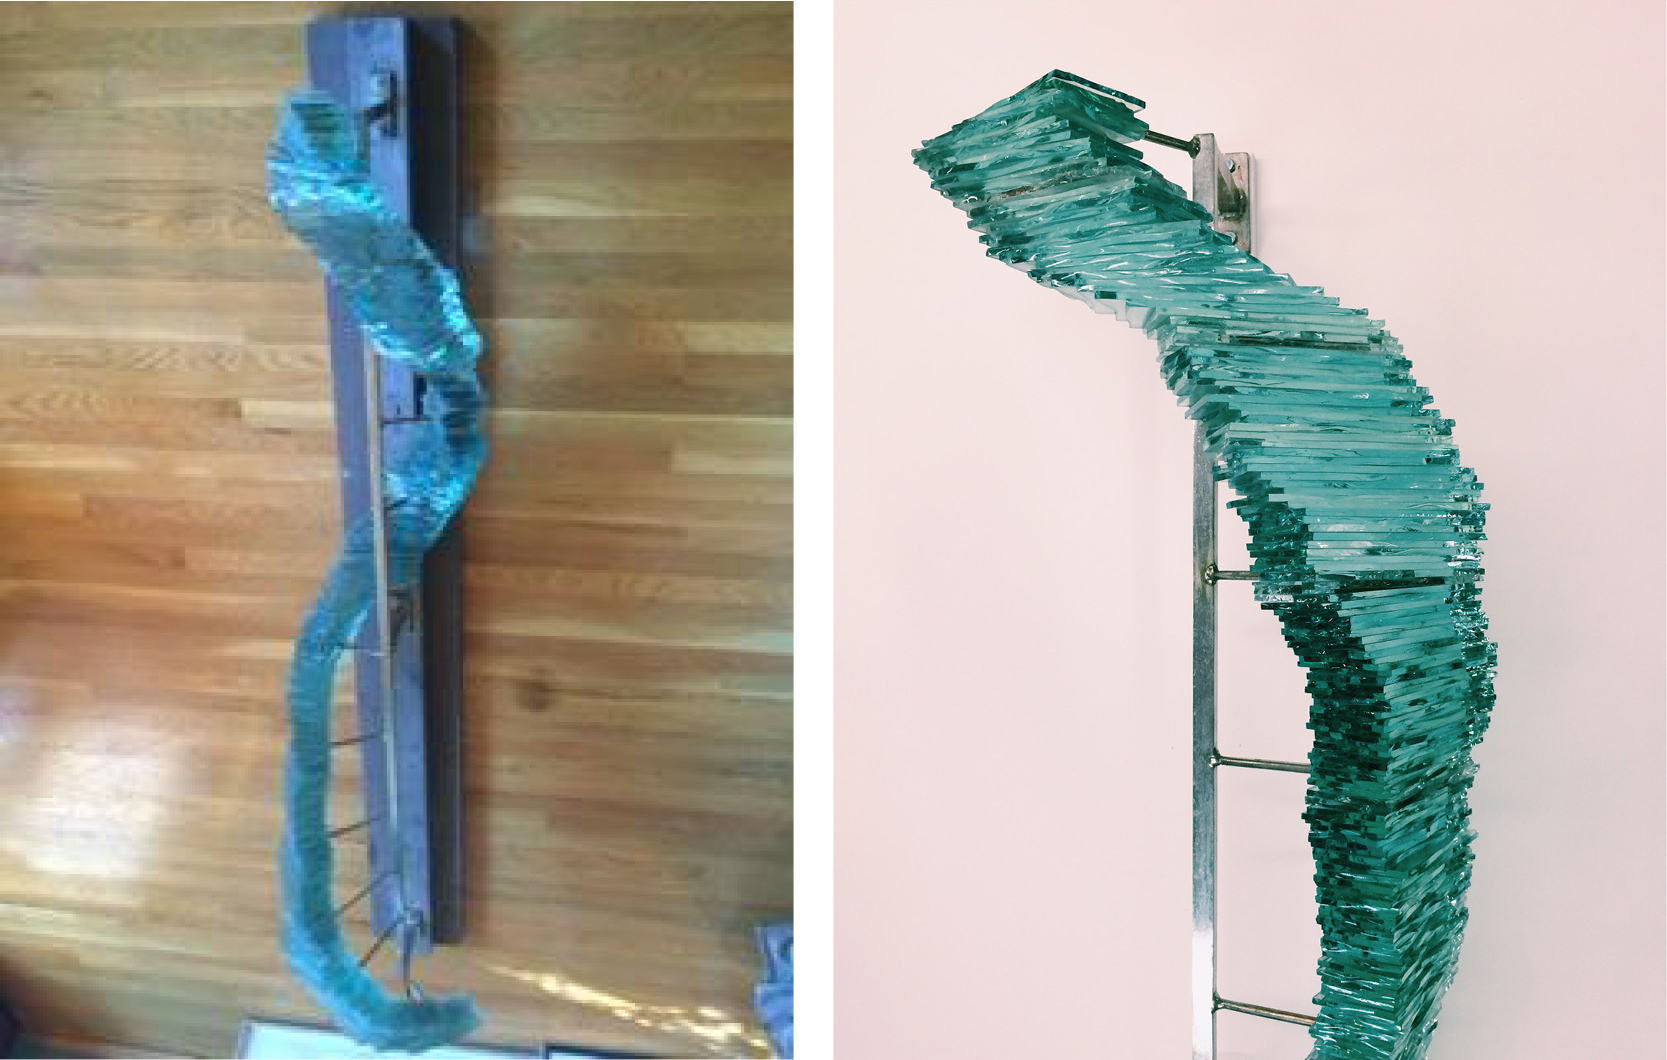 Before and after sculpture revitalization by Allison and Ross